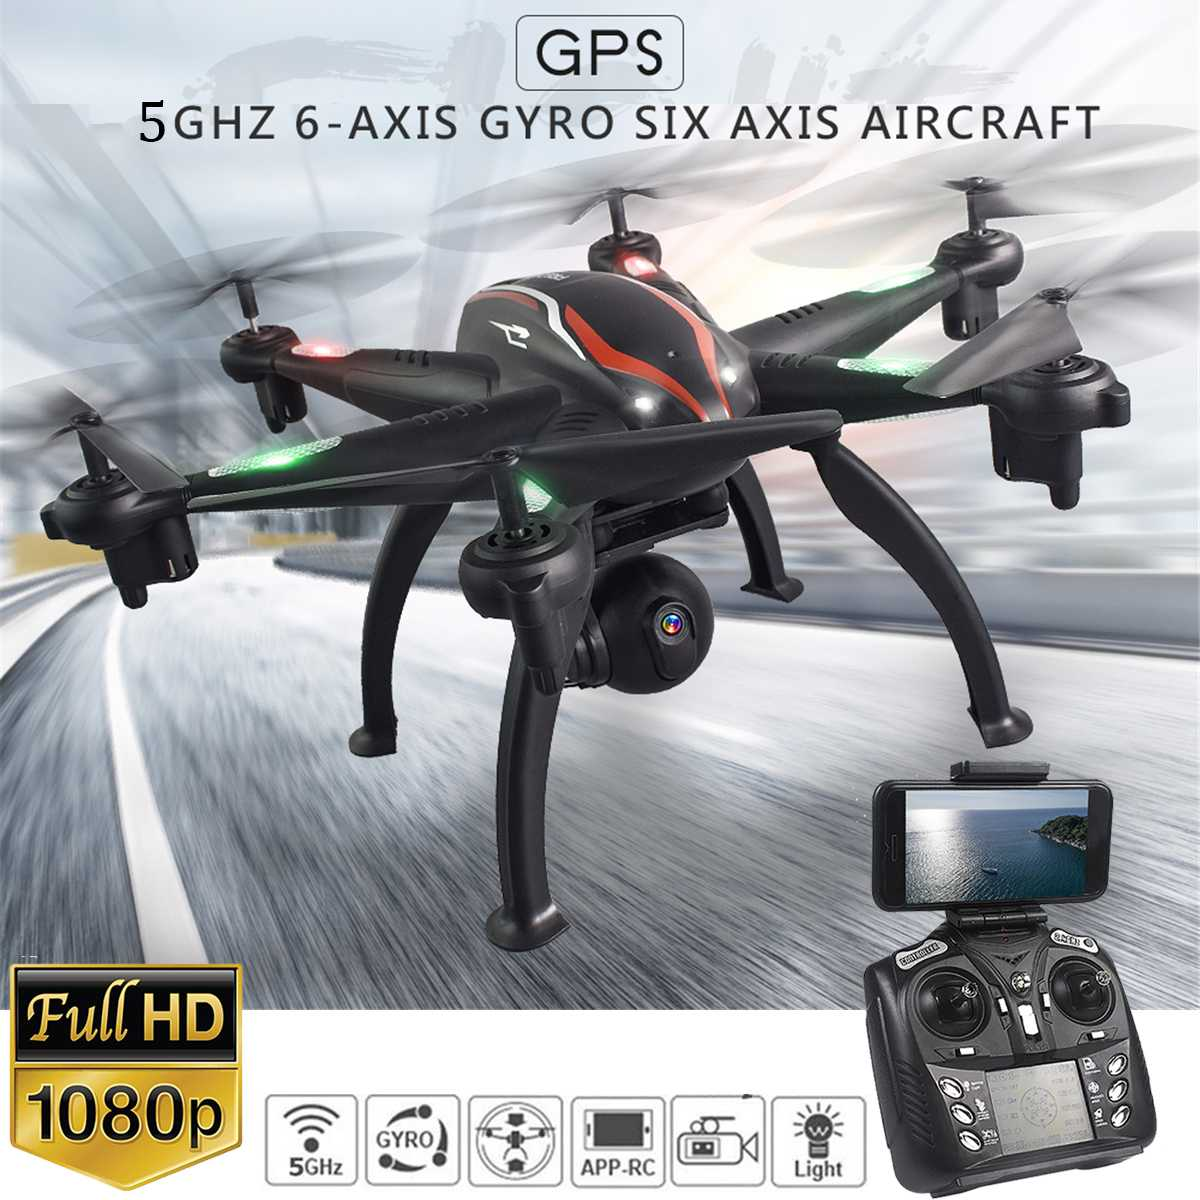 PULUZ RC Drone GPS 1080P Camera Smart Follow Mode 6 Axis Gyro Quadcopter Professional